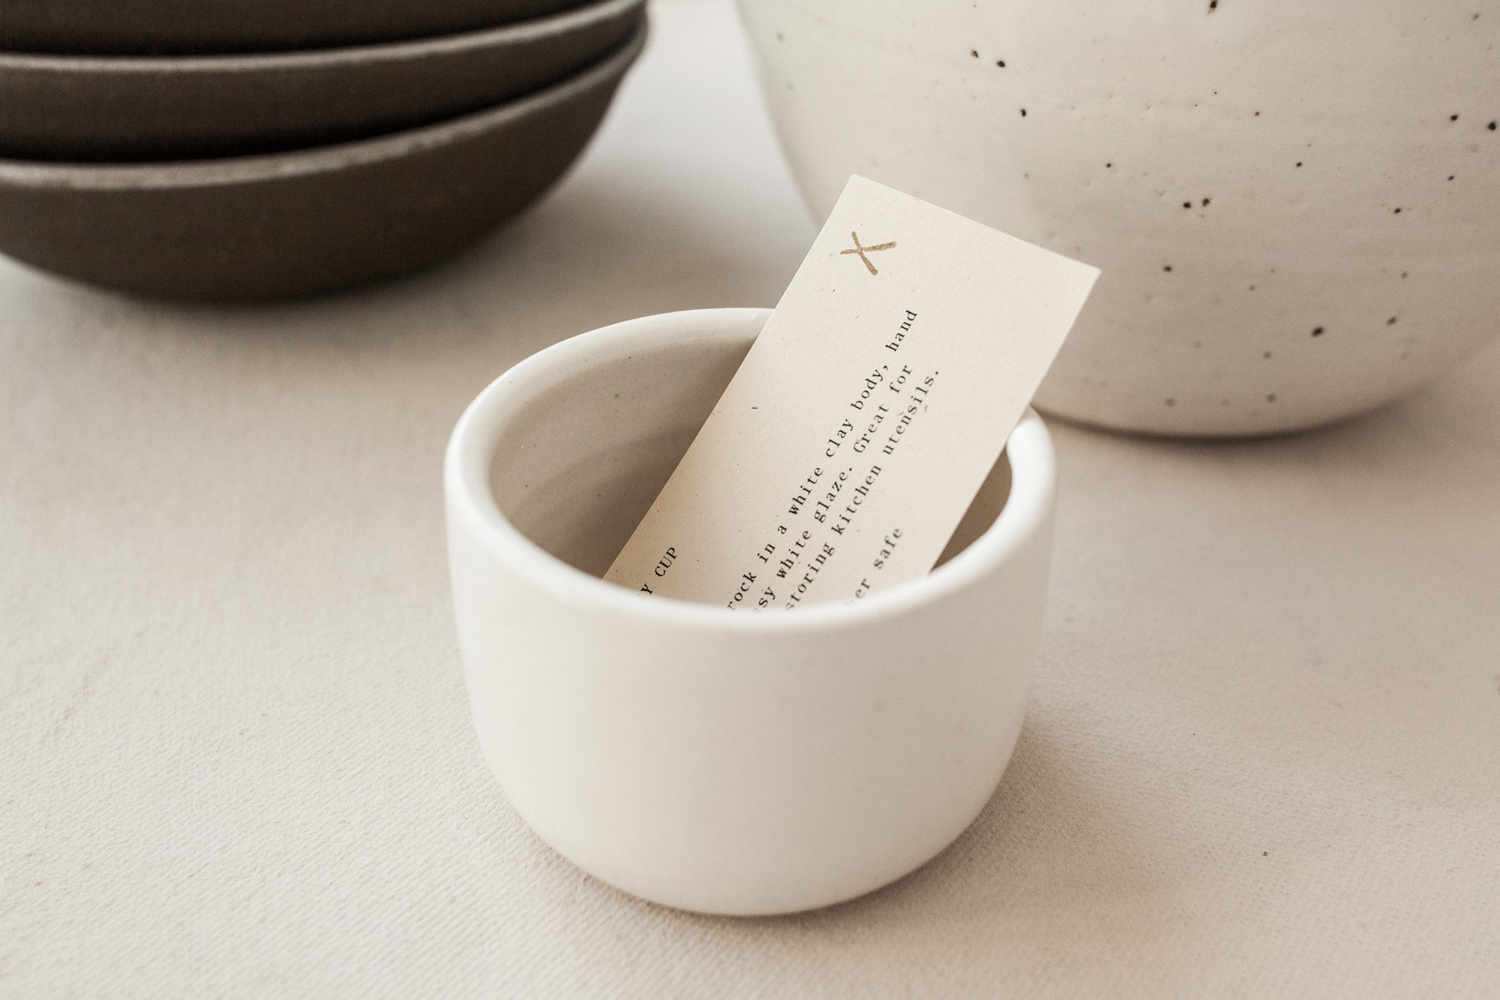 Brand identity and product card by Seattle-based design studio Shore for Natasha Alphonse Ceramics